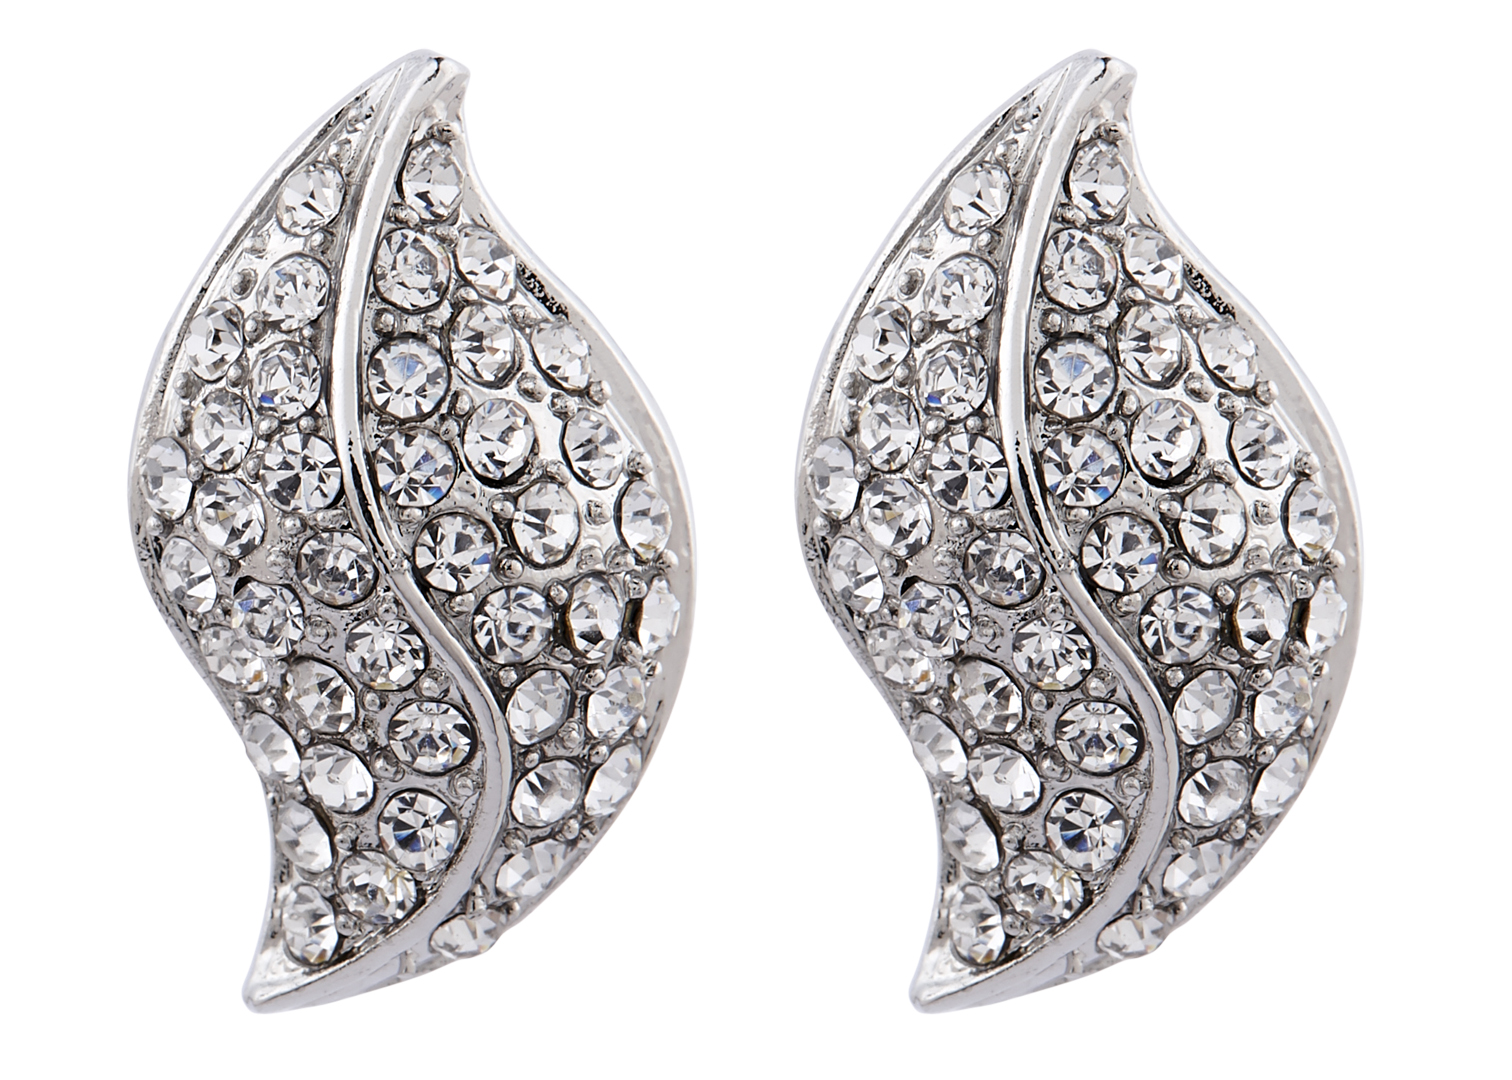 Clip On Earrings - Willow S - silver stud earring with clear crystals